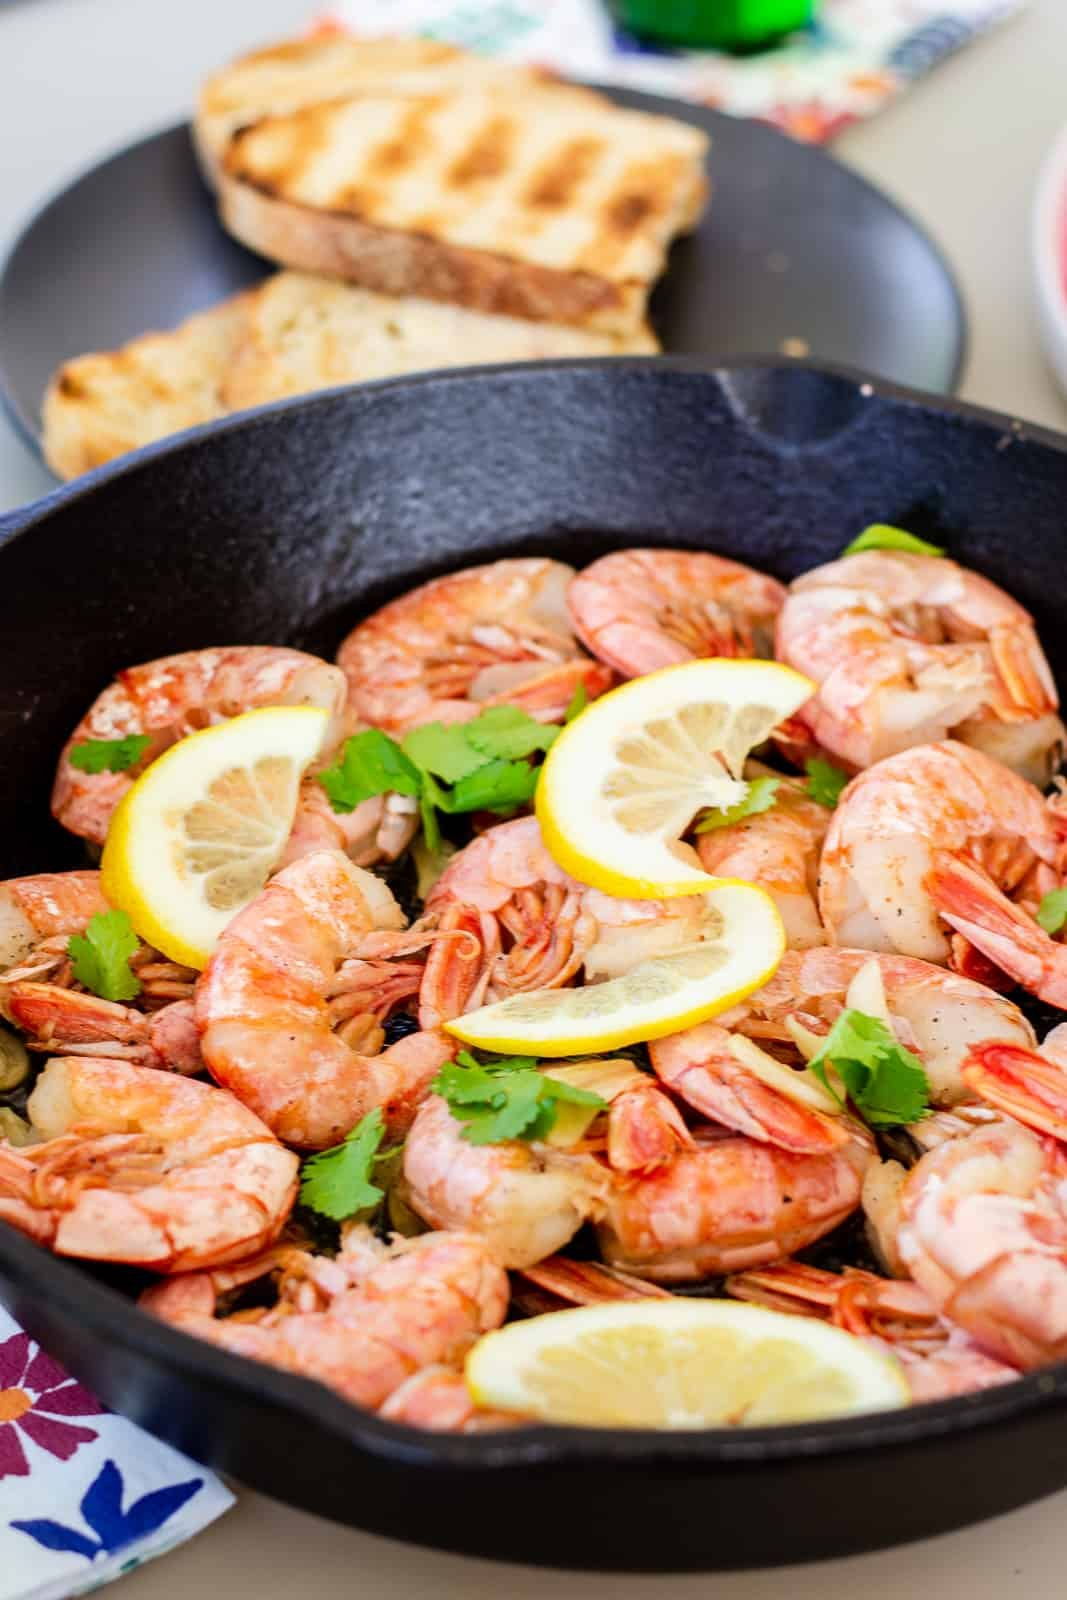 Shrimp in a cast iron skillet garnished with lemon slices and cilantro leaves.